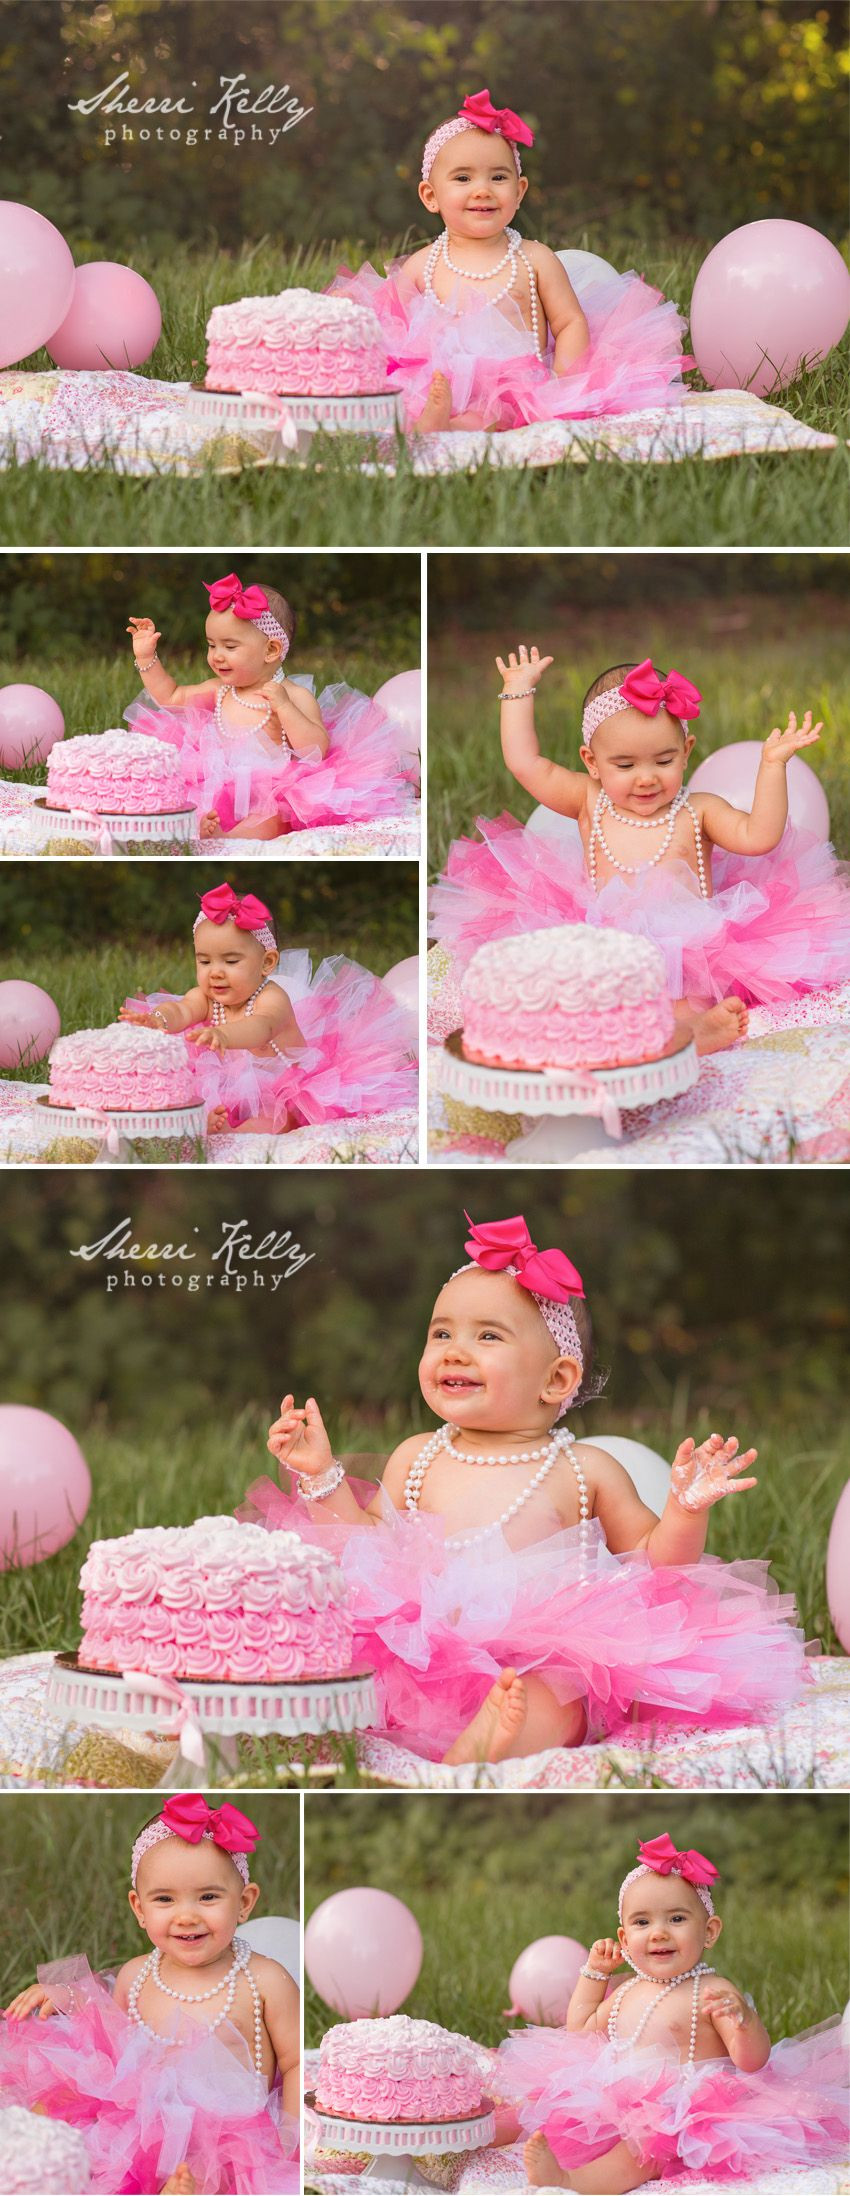 Best ideas about Birthday Cake Smash . Save or Pin Outdoor First Birthday Cake Smash s with pink rose Now.